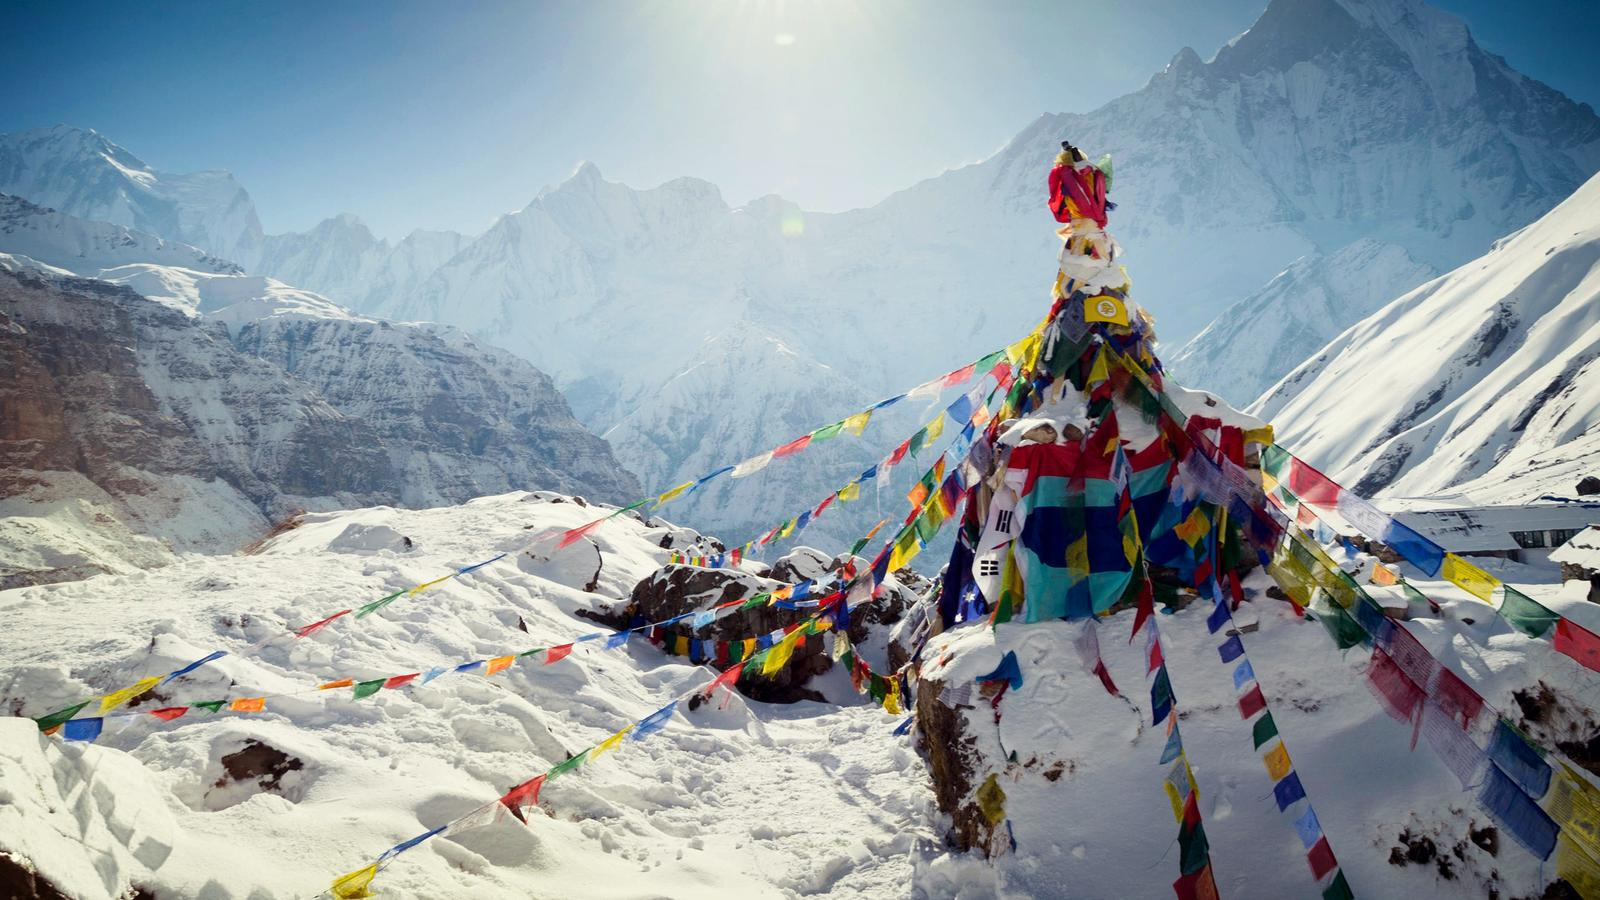 Let's aim very high, Everest Base Camp!